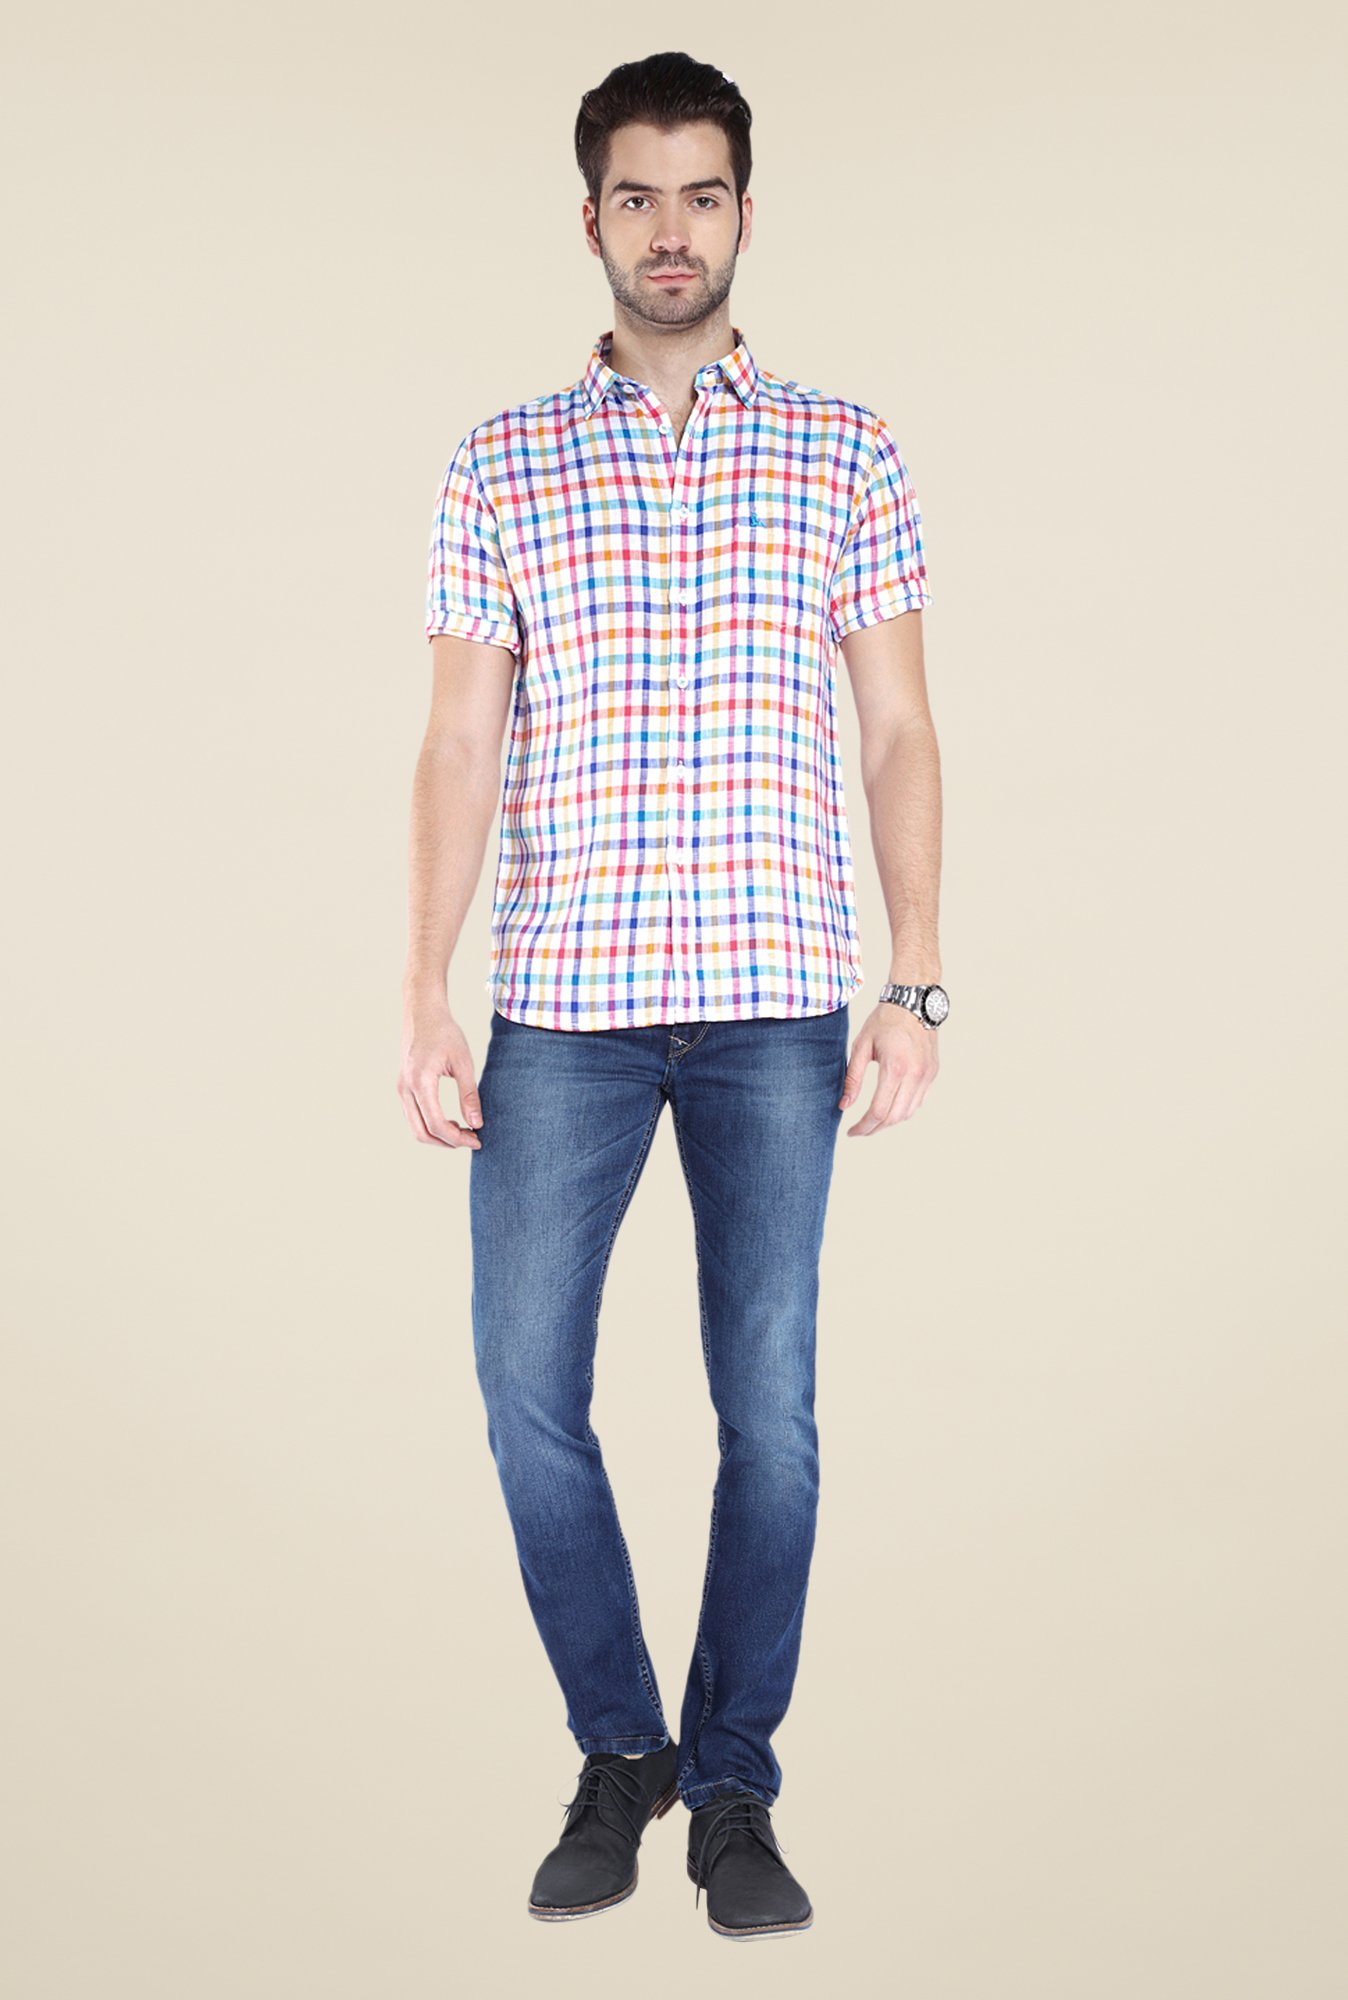 Parx Multicolor Checks Linen Shirt